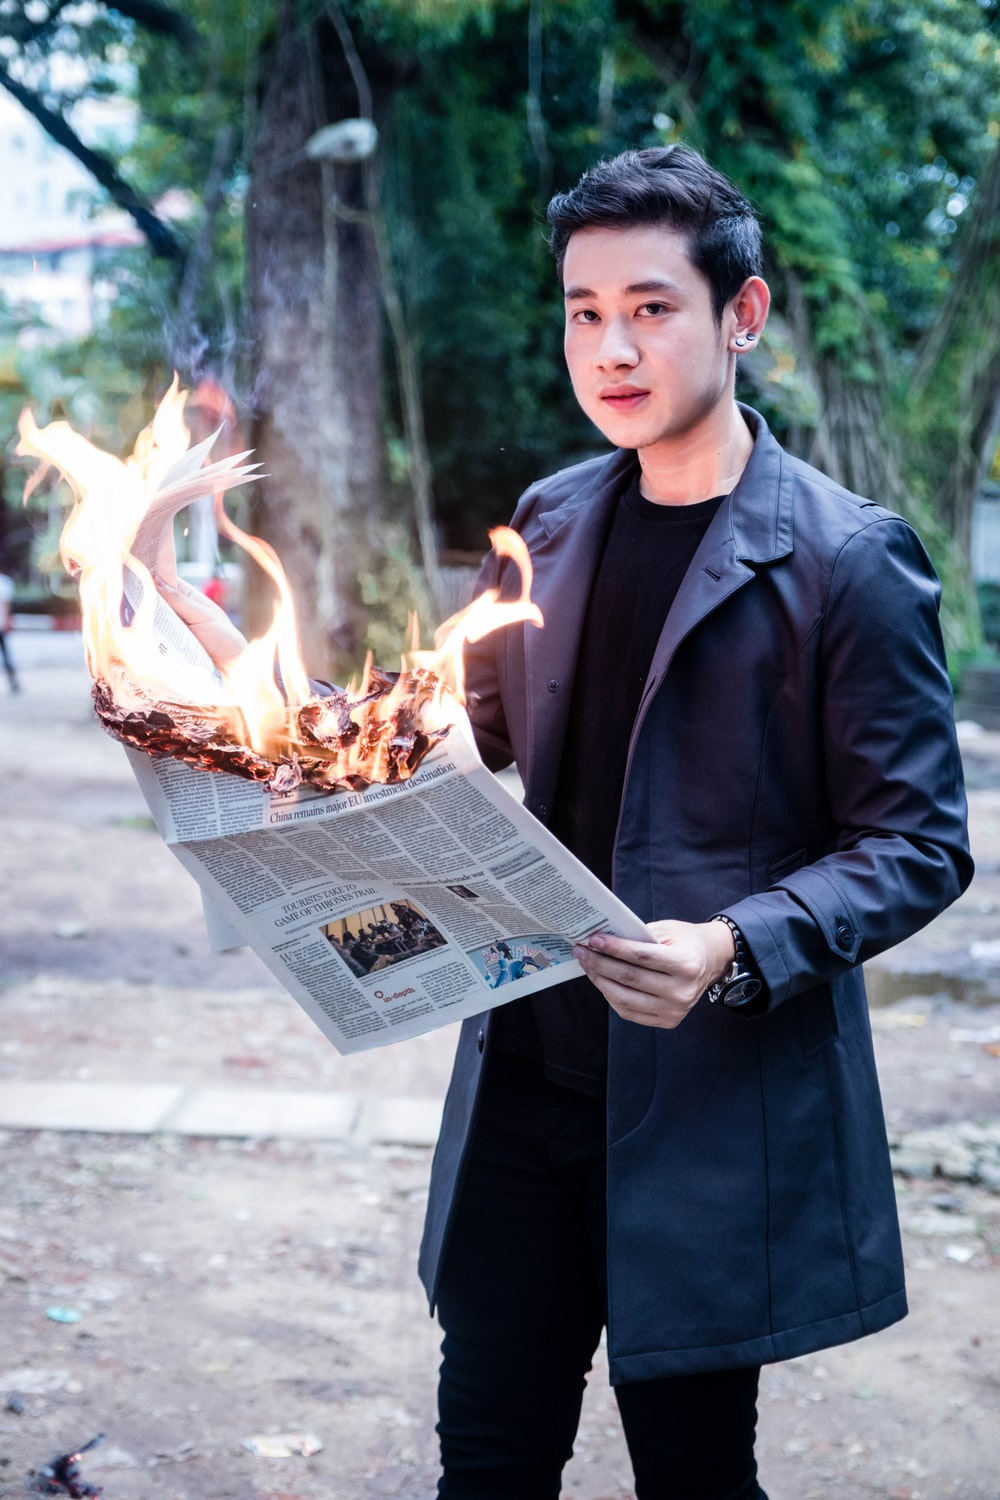 man holding newspaper in fire